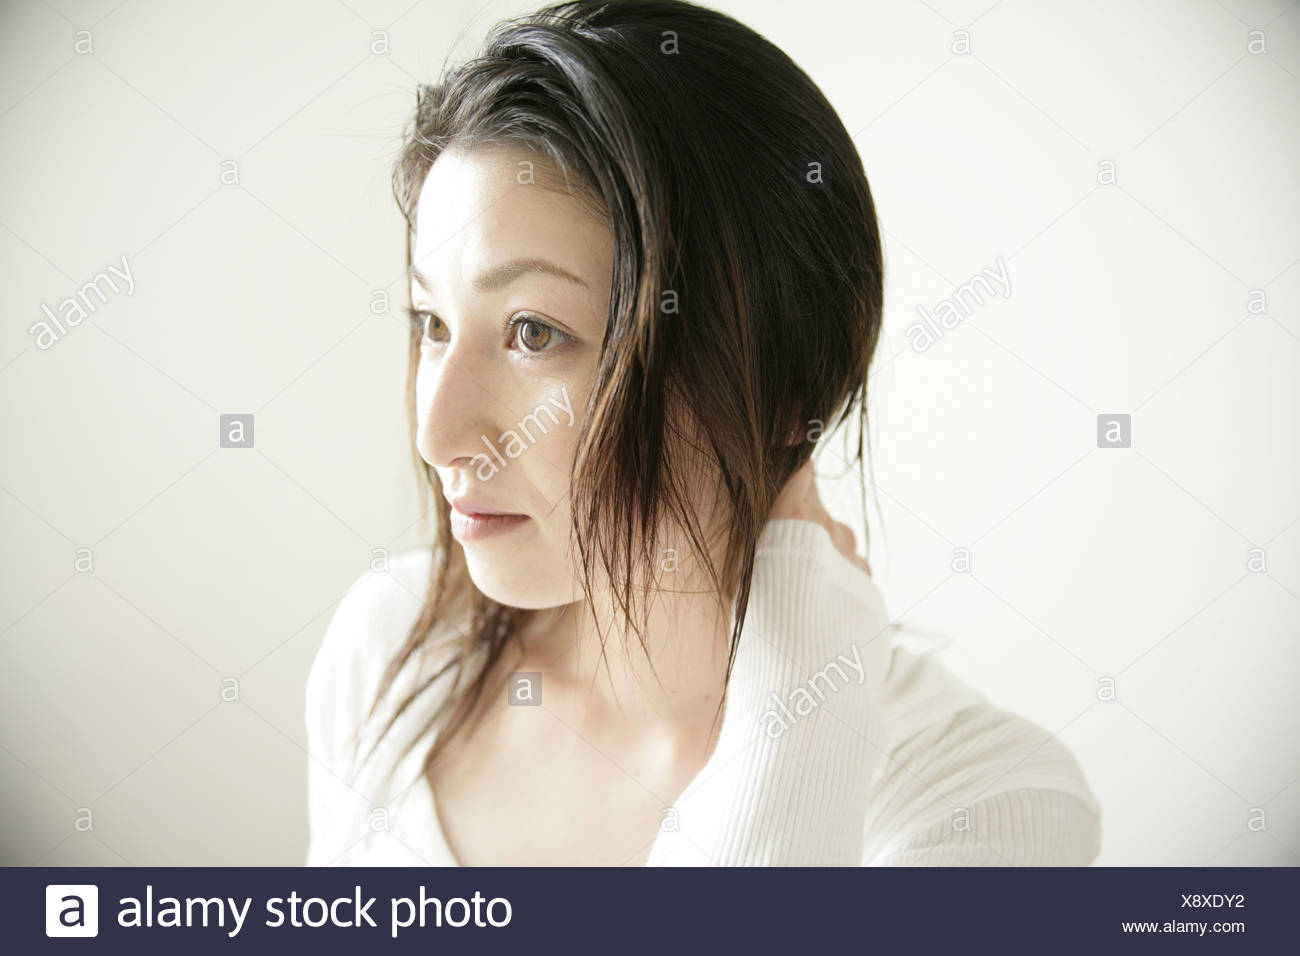 Close up of a young woman looking away - Stock Image